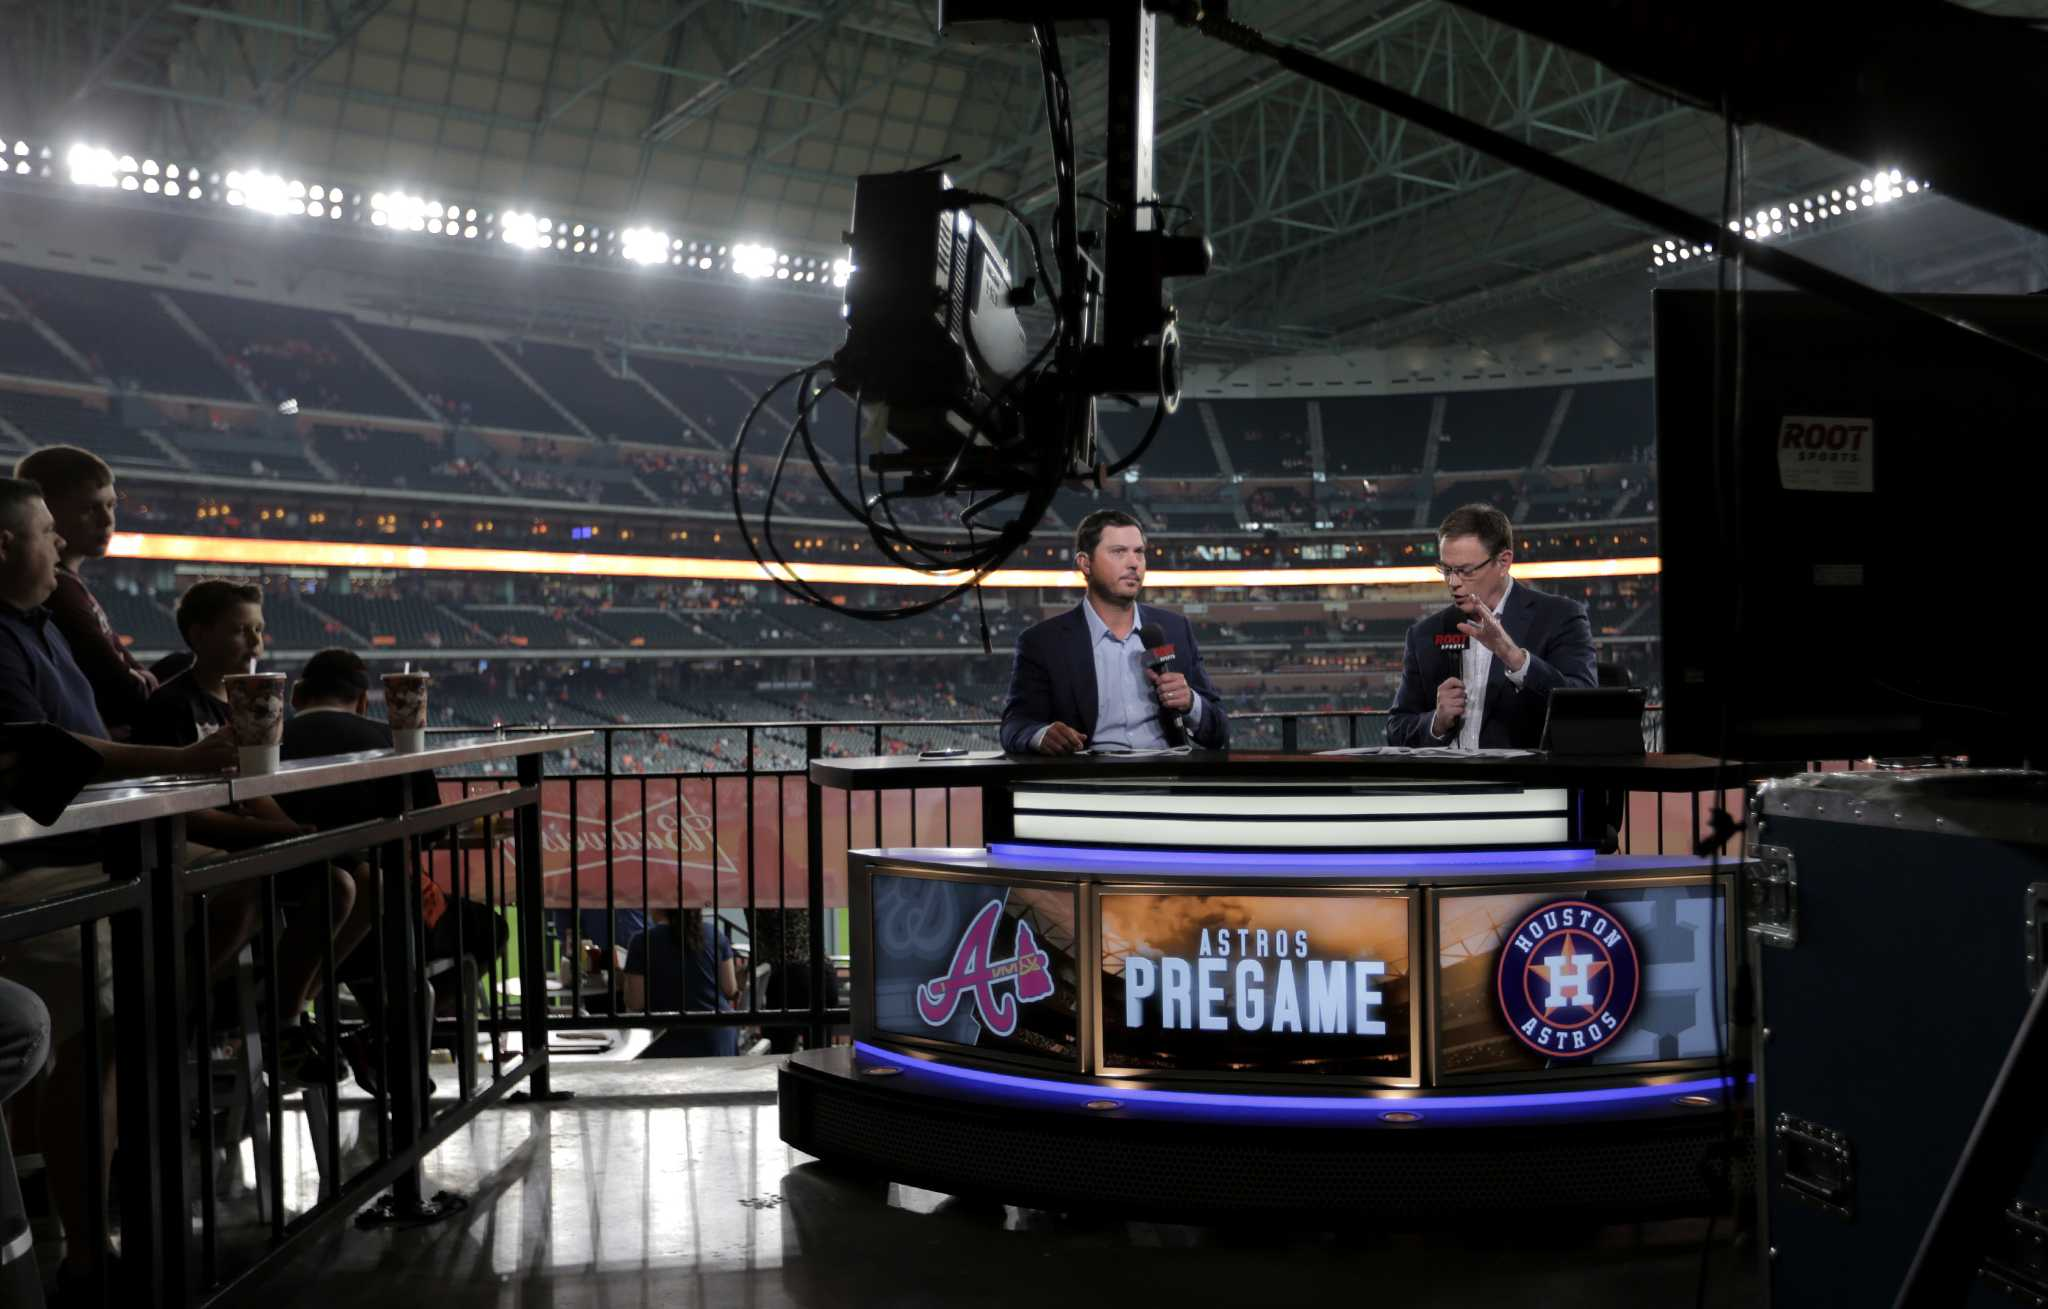 On TV/Radio: New AT&T SportsNet deal could help Astros